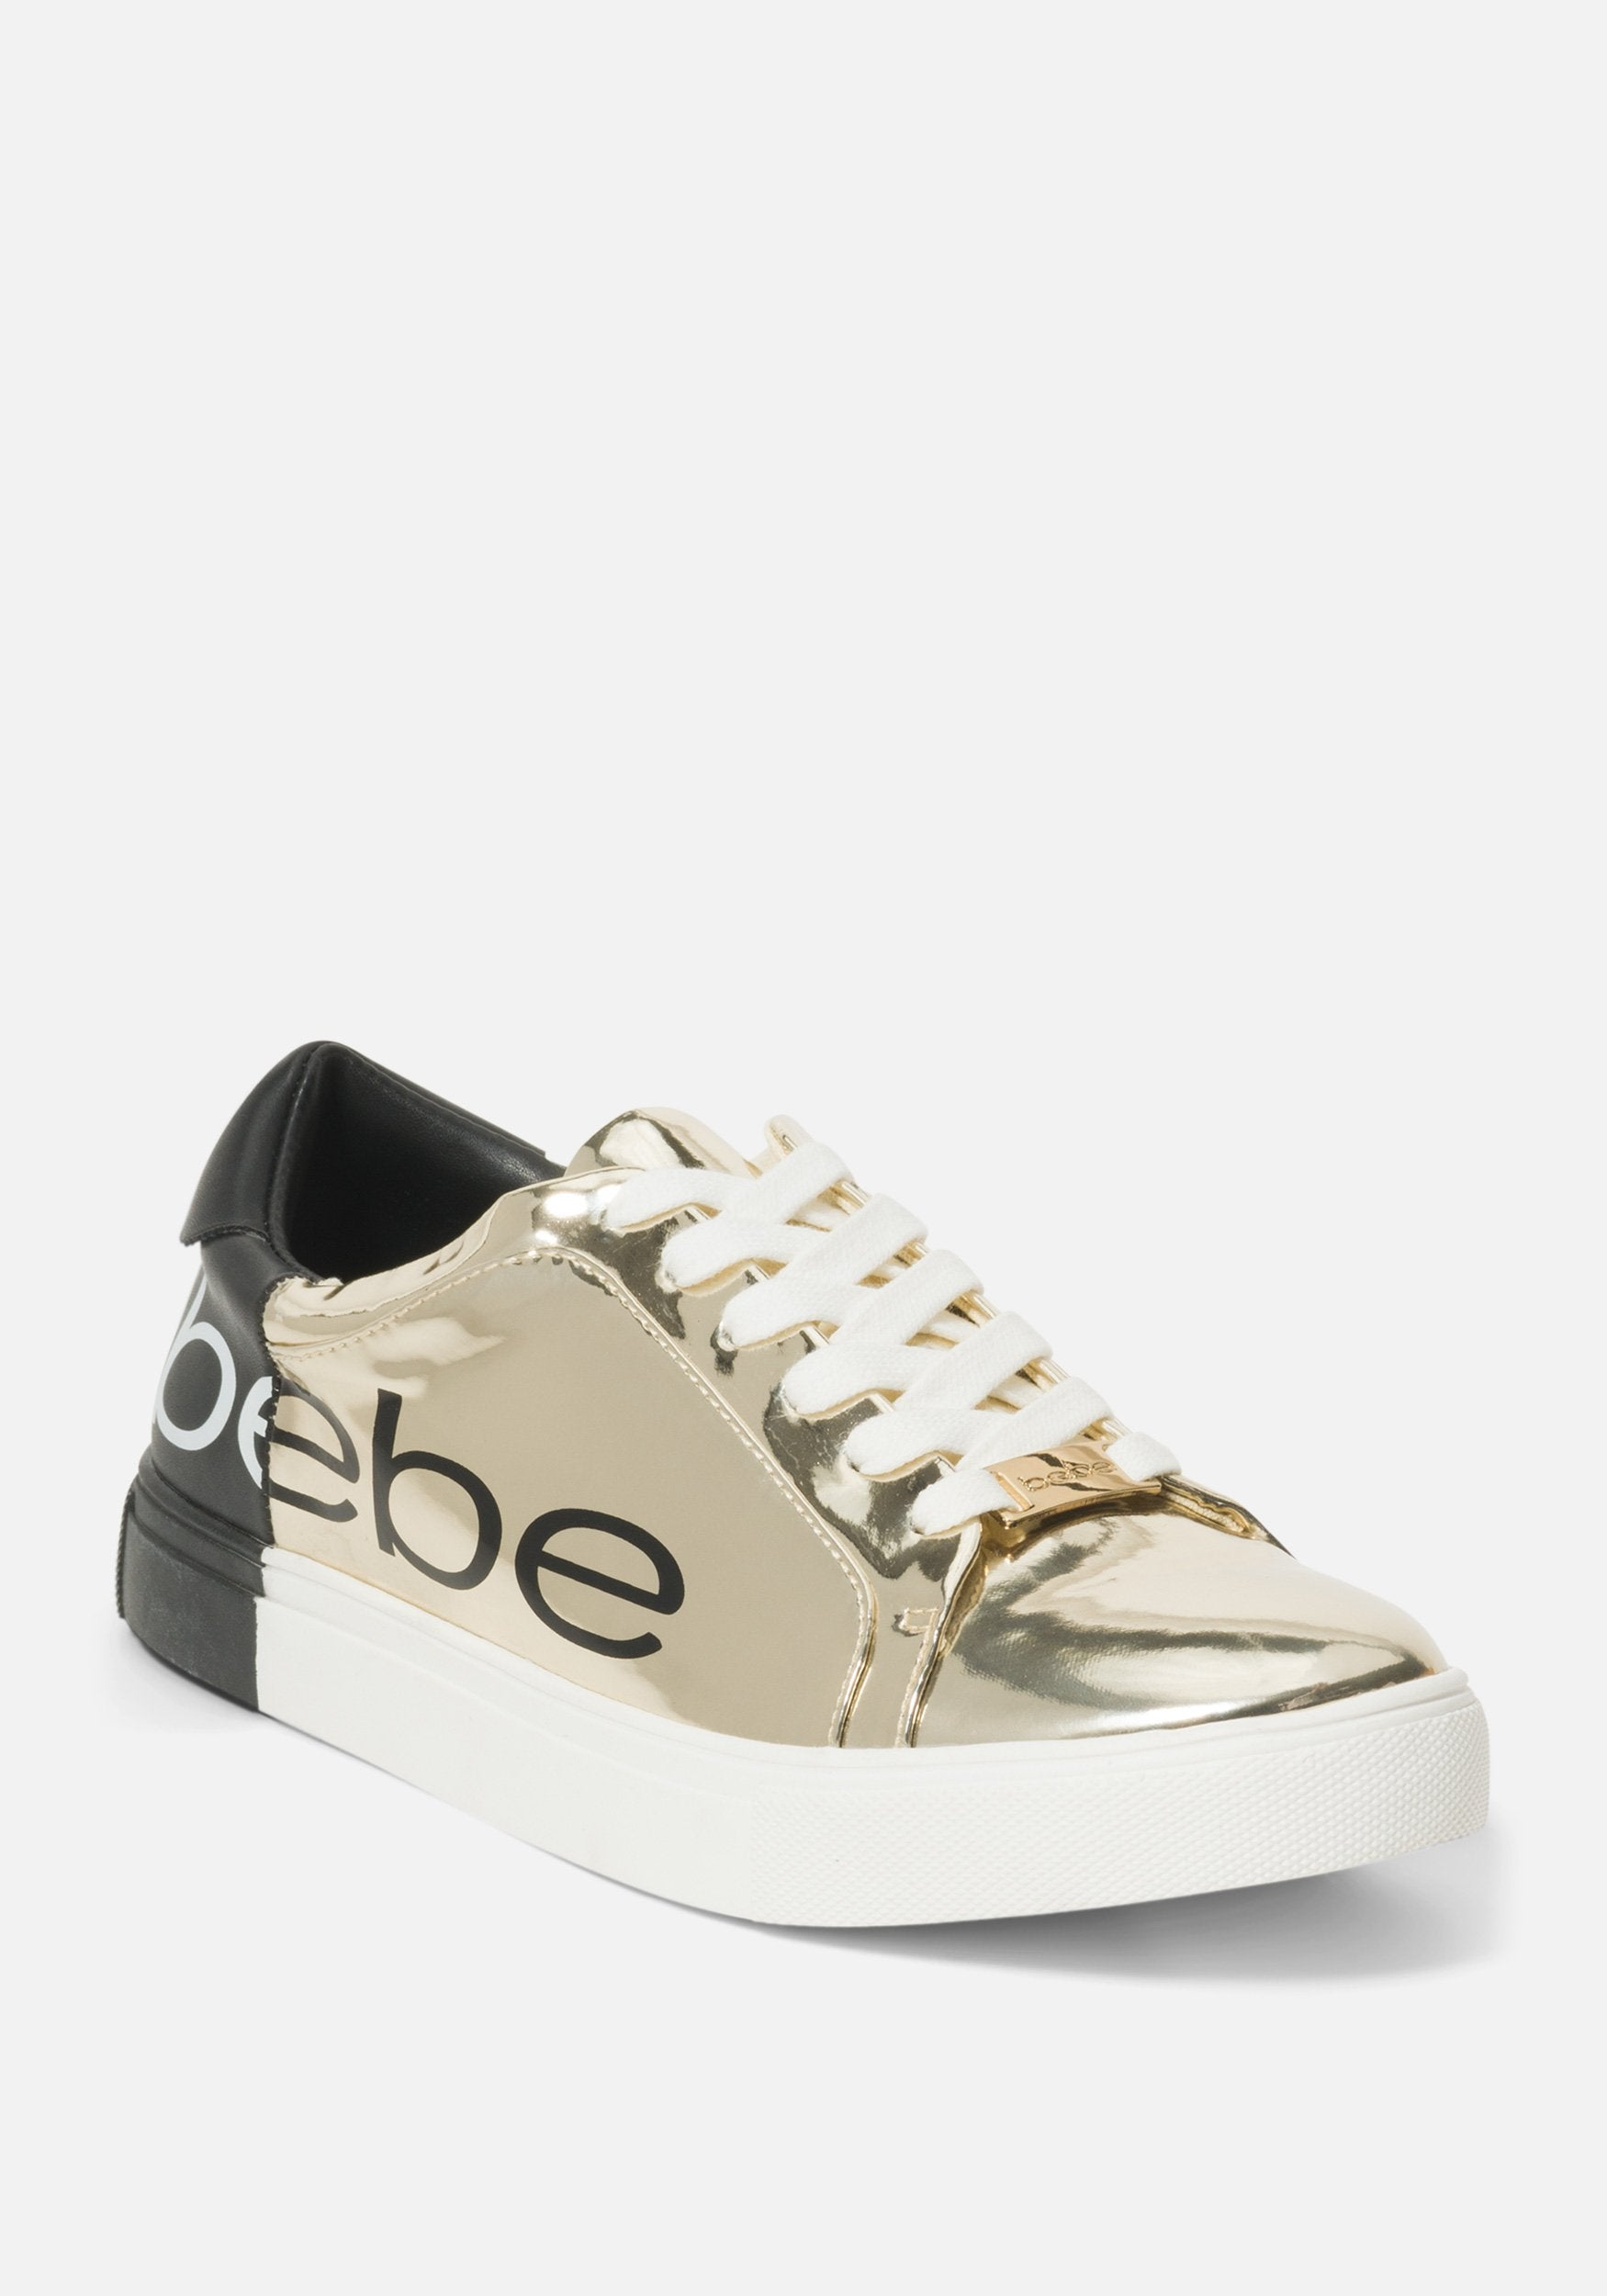 Women's Charley Bebe Logo Sneakers, Size 6 in GOLD/BLACK Synthetic